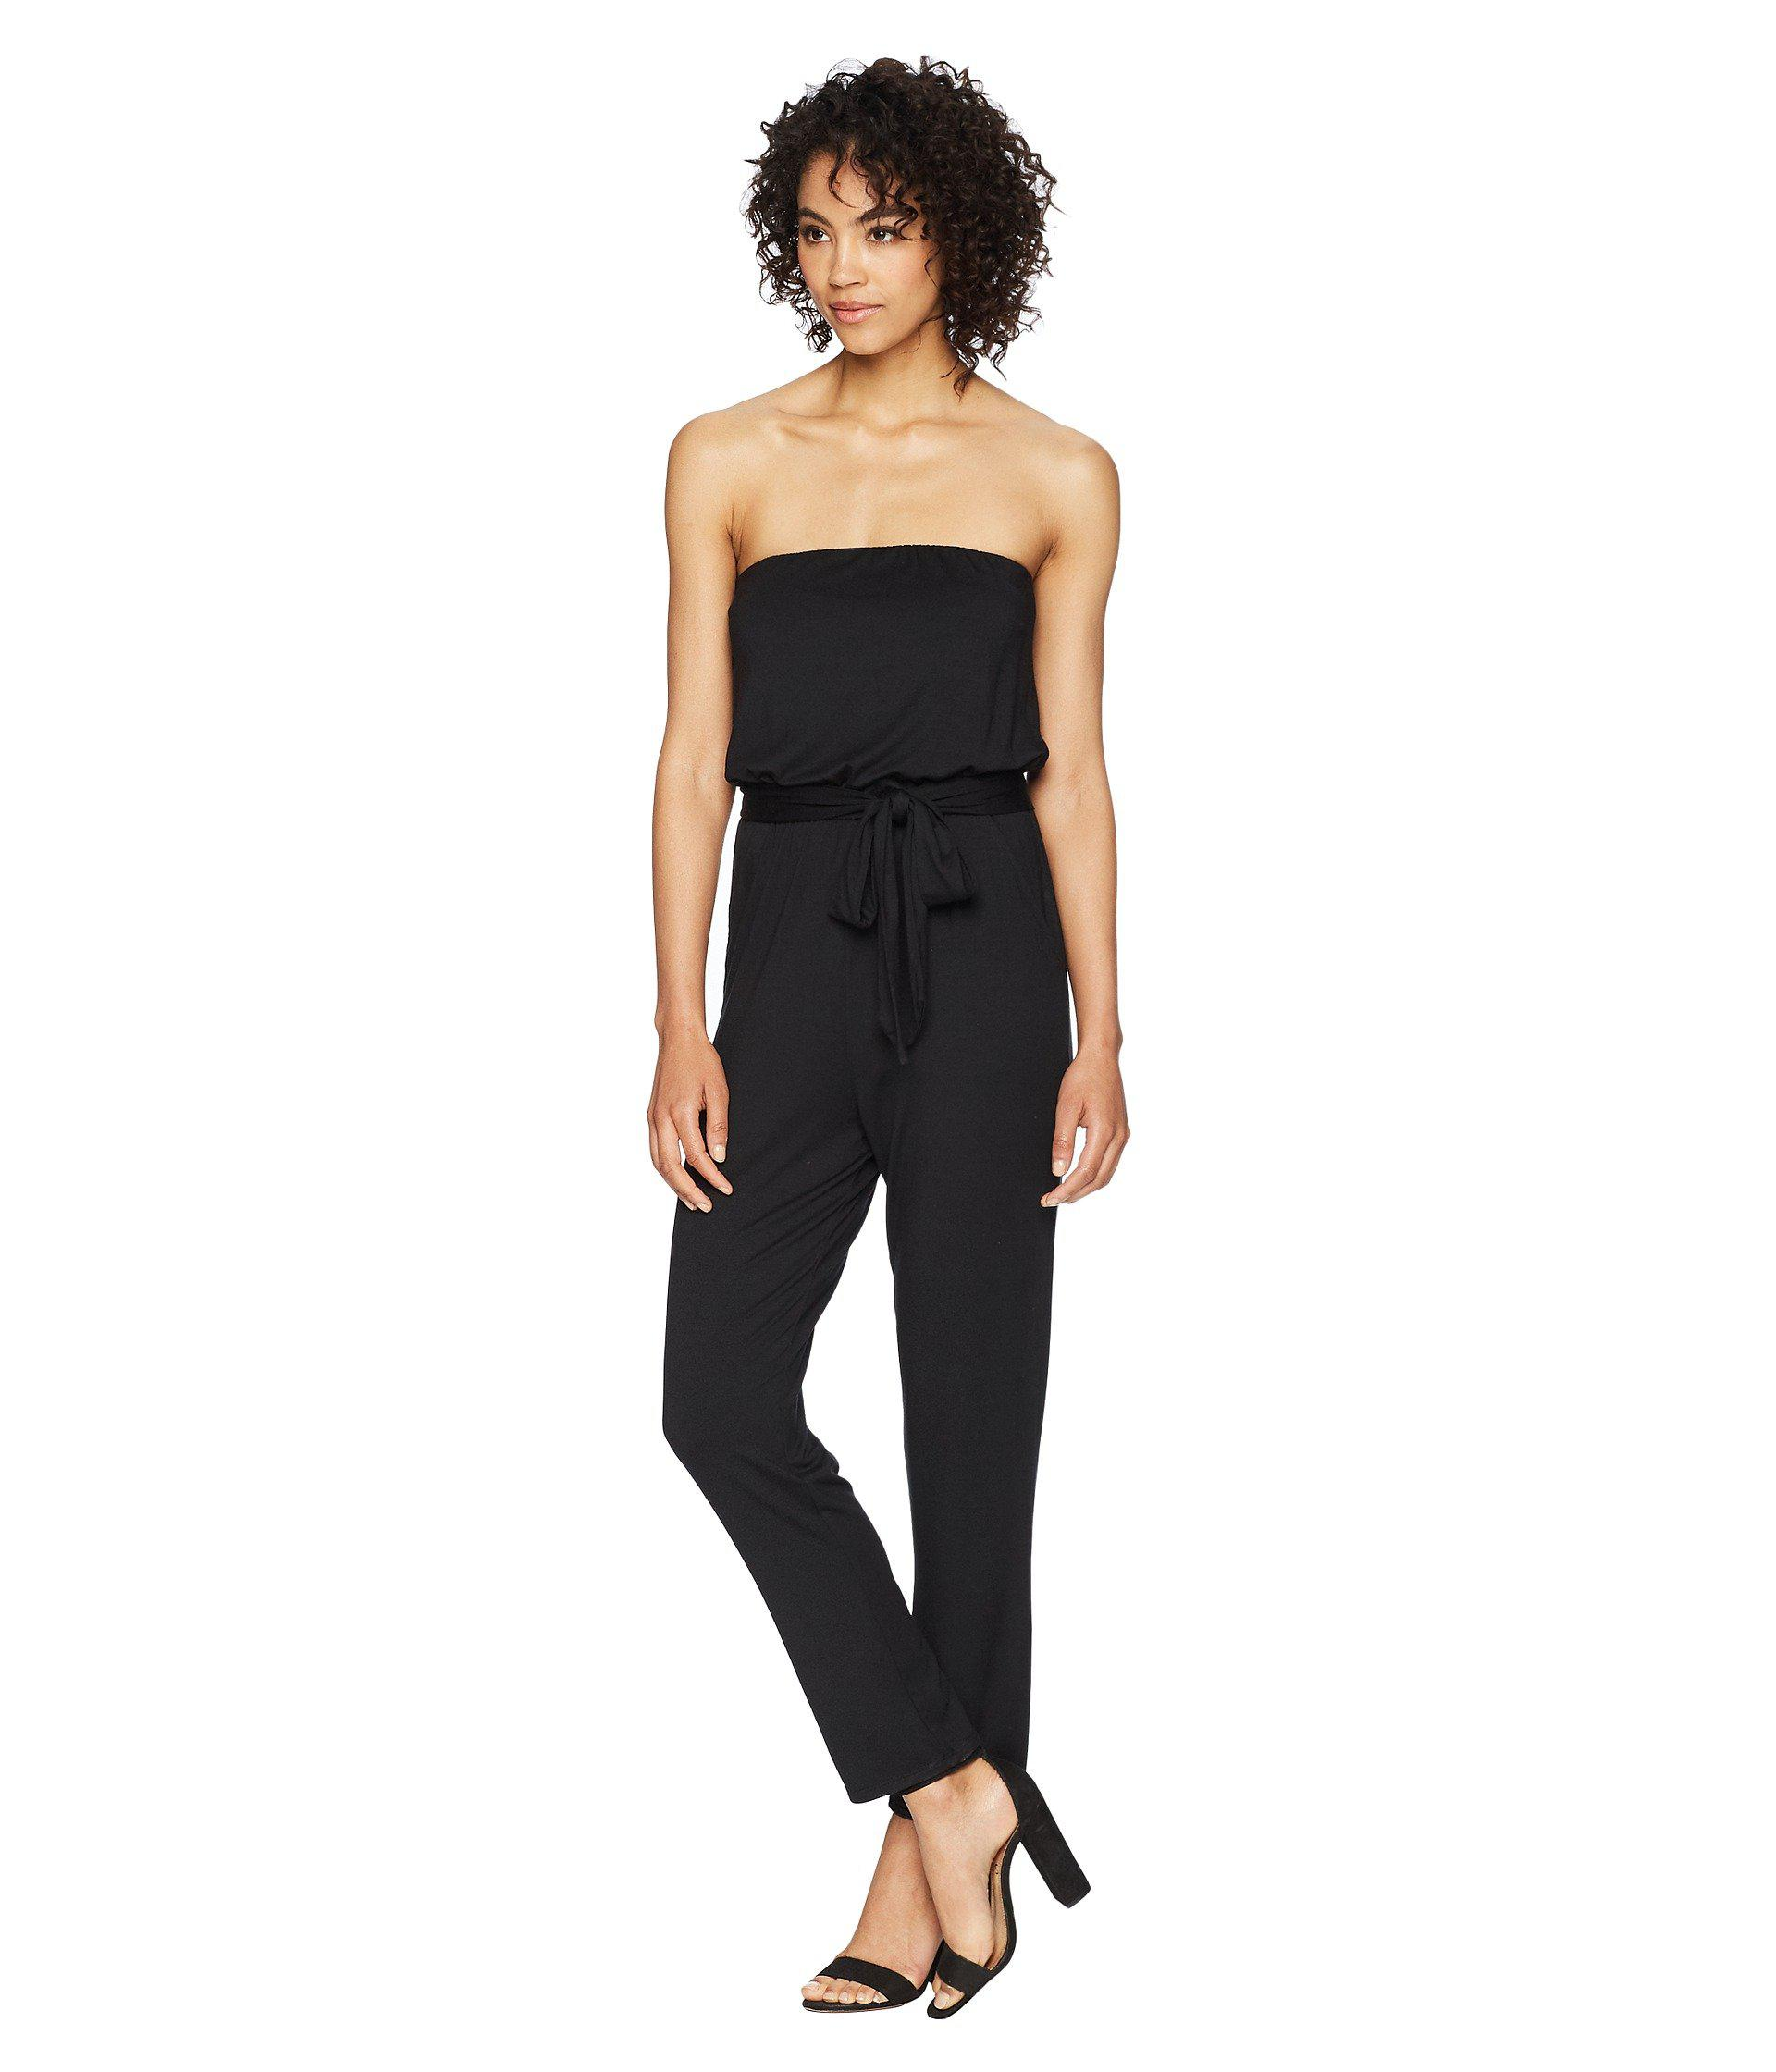 a3f8a89ef15 Lyst - Rachel Pally Donnatella Jumpsuit (black) Women s Jumpsuit   Rompers  One Piece in Black